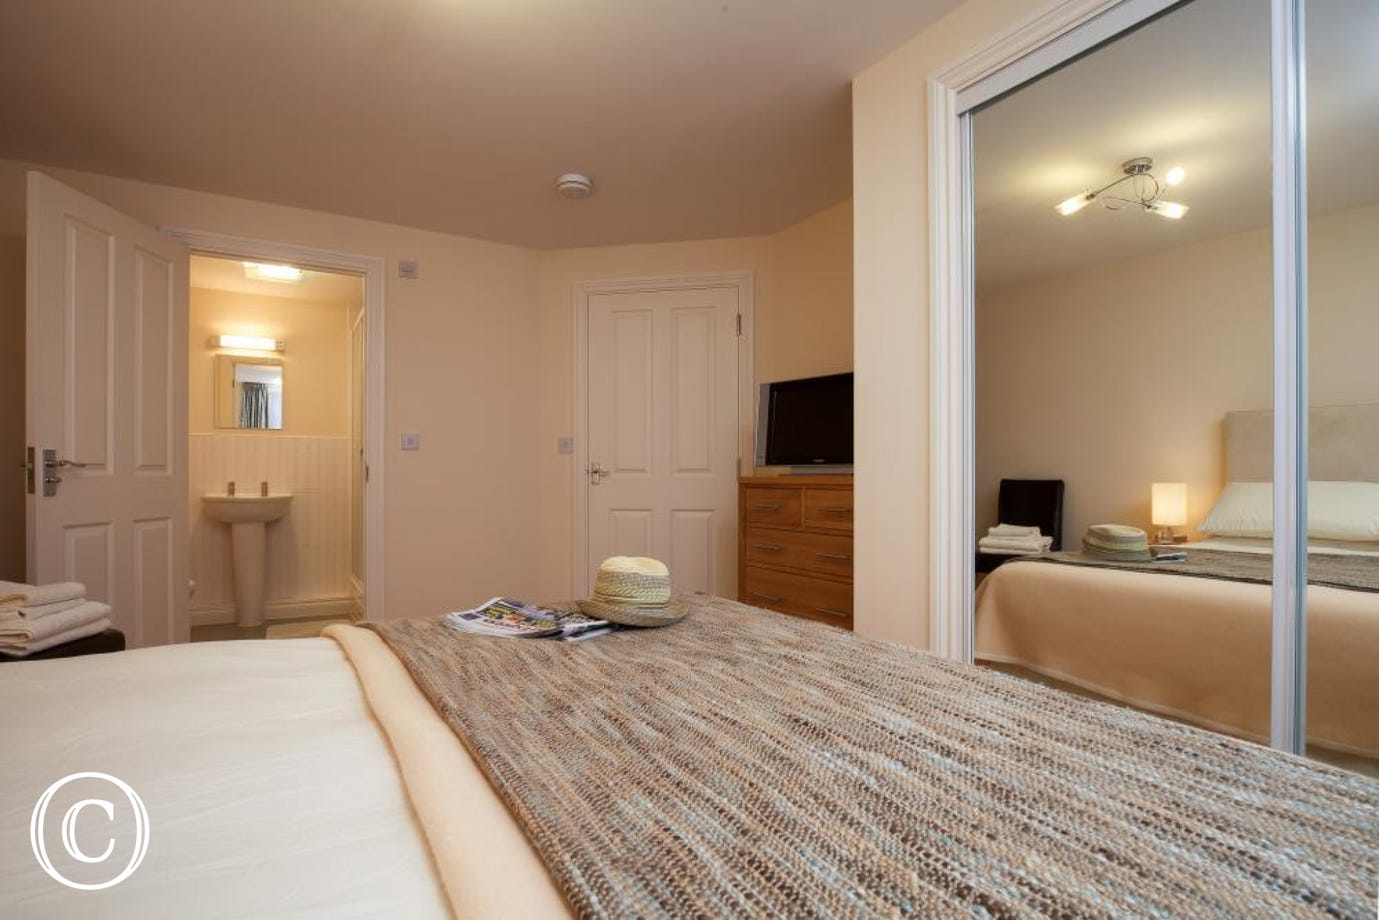 Large, Spacious Bedroom at 16 Great Cliff Apartment in Dawlish. Perfect for a Comfortable Devon Coastal Break